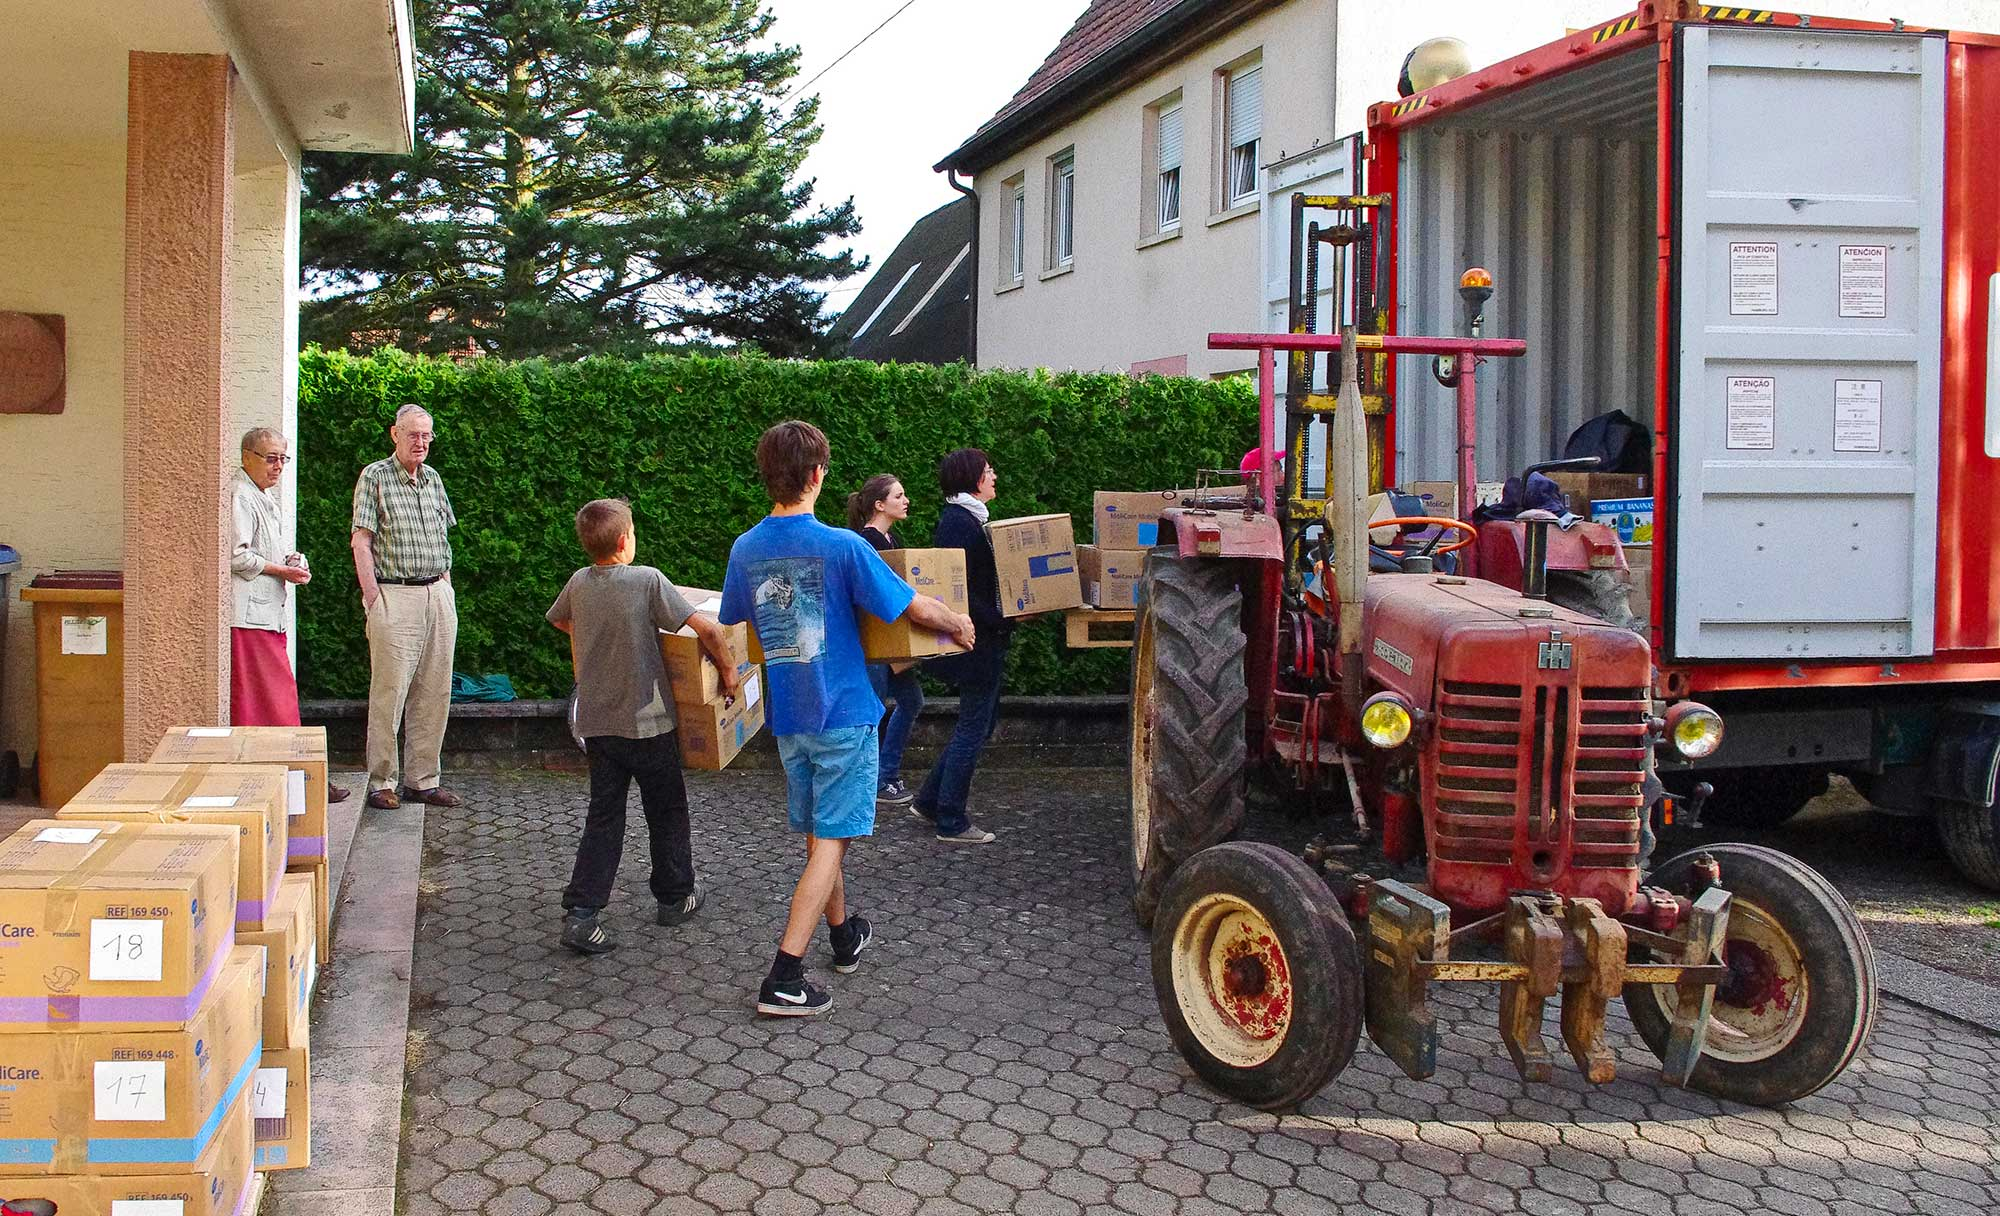 Agnes HIrschler and Jean Hege stand on the porch of a building watching a group of people load boxes into a container with a tractor in the foreground.